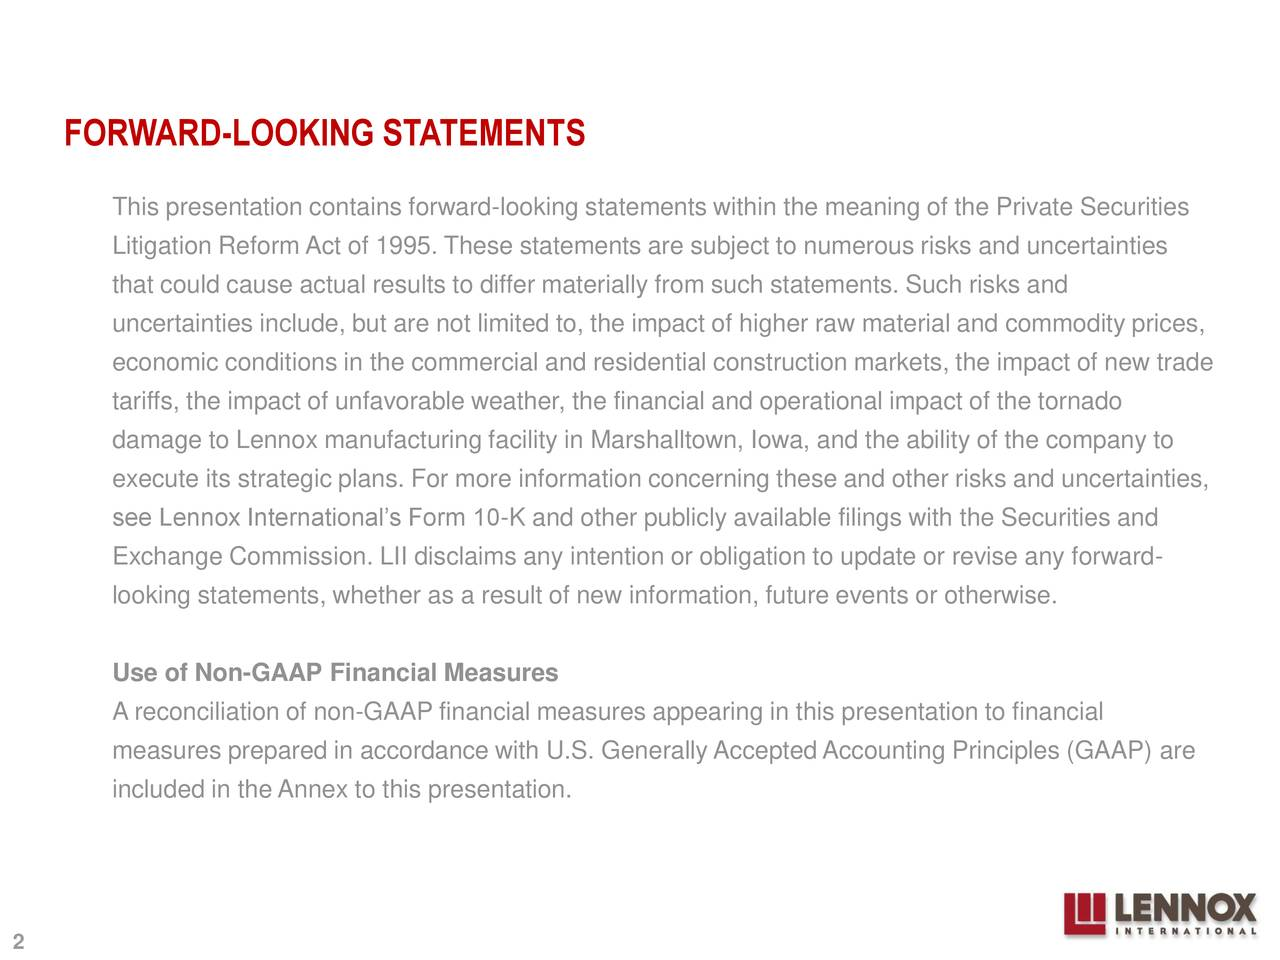 This presentation contains forward-looking statements within the meaning of the Private Securities Litigation Reform Act of 1995. These statements are subject to numerous risks and uncertainties that could cause actual results to differ materially from such statements. Such risks and uncertainties include, but are not limited to, the impact of higher raw material and commodity prices, economic conditions in the commercial and residential construction markets, the impact of new trade tariffs, the impact of unfavorable weather, the financial and operational impact of the tornado damage to Lennox manufacturing facility in Marshalltown, Iowa, and the ability of the company to execute its strategic plans. For more information concerning these and other risks and uncertainties, see Lennox International's Form 10-K and other publicly available filings with the Securities and Exchange Commission. LII disclaims any intention or obligation to update or revise any forward- looking statements, whether as a result of new information, future events or otherwise. Use of Non-GAAP Financial Measures A reconciliation of non-GAAP financial measures appearing in this presentation to financial measures prepared in accordance with U.S. Generally AcceptedAccounting Principles (GAAP) are included in the Annex to this presentation.